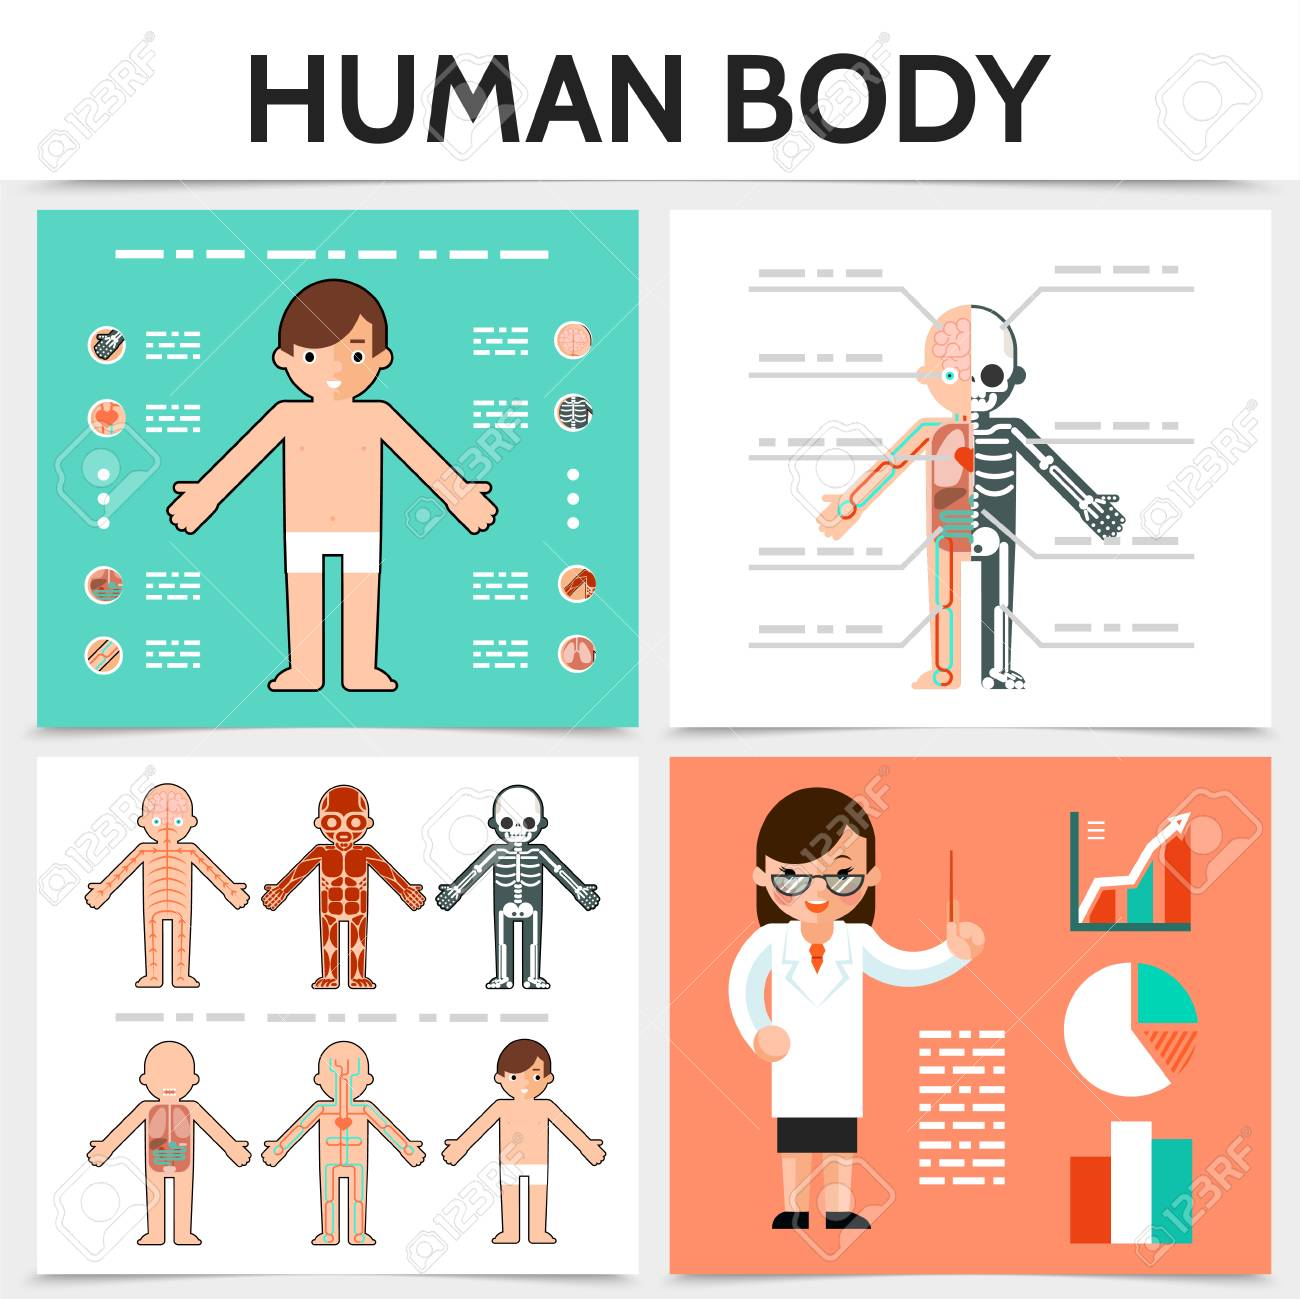 Flat Human Anatomy Square Concept With Internal Organs Skeletal